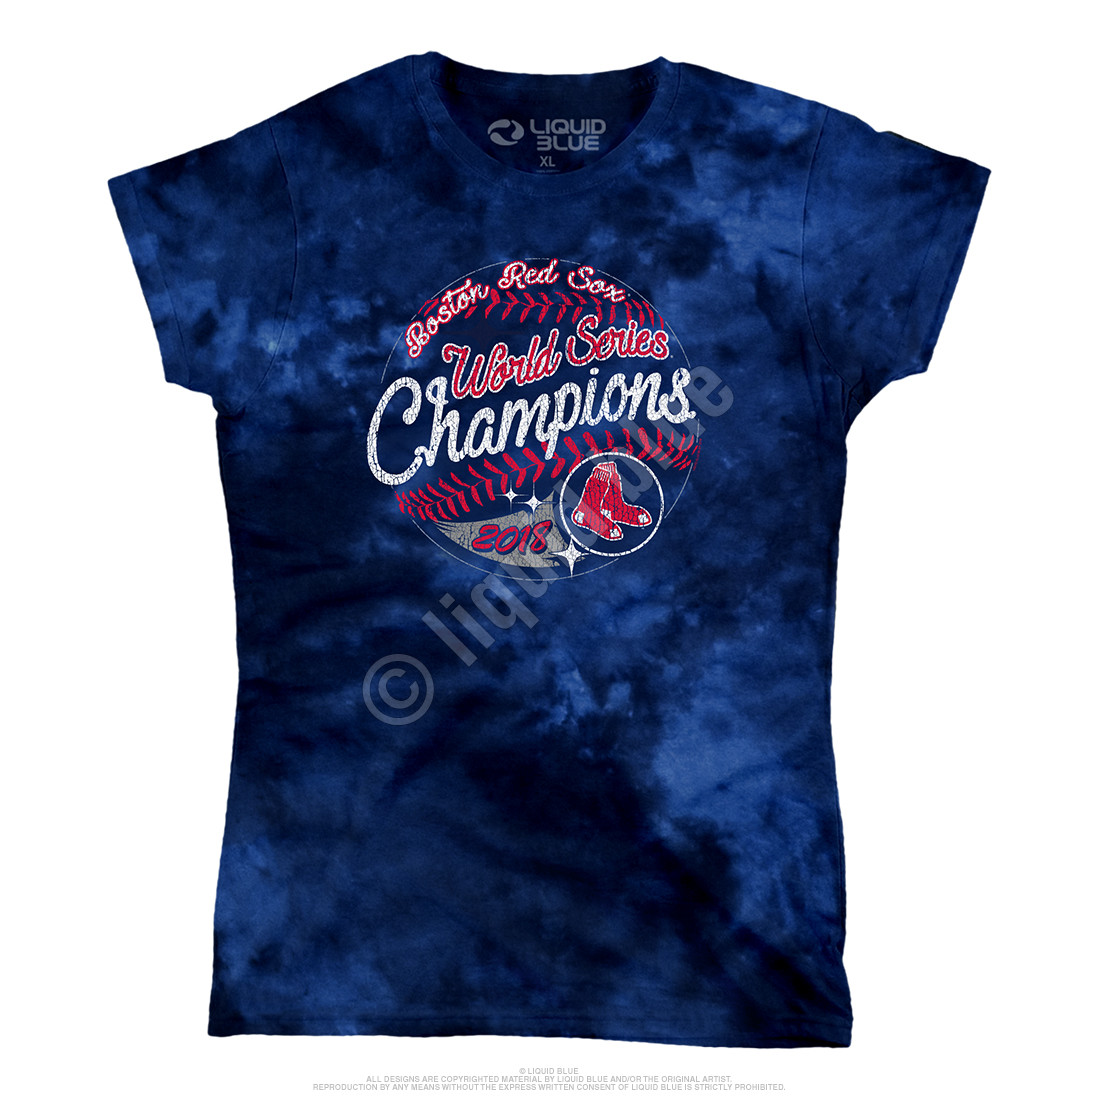 Boston Red Sox World Series Champions Womens Tie-Dye T-Shirt Clearance 50% OFF